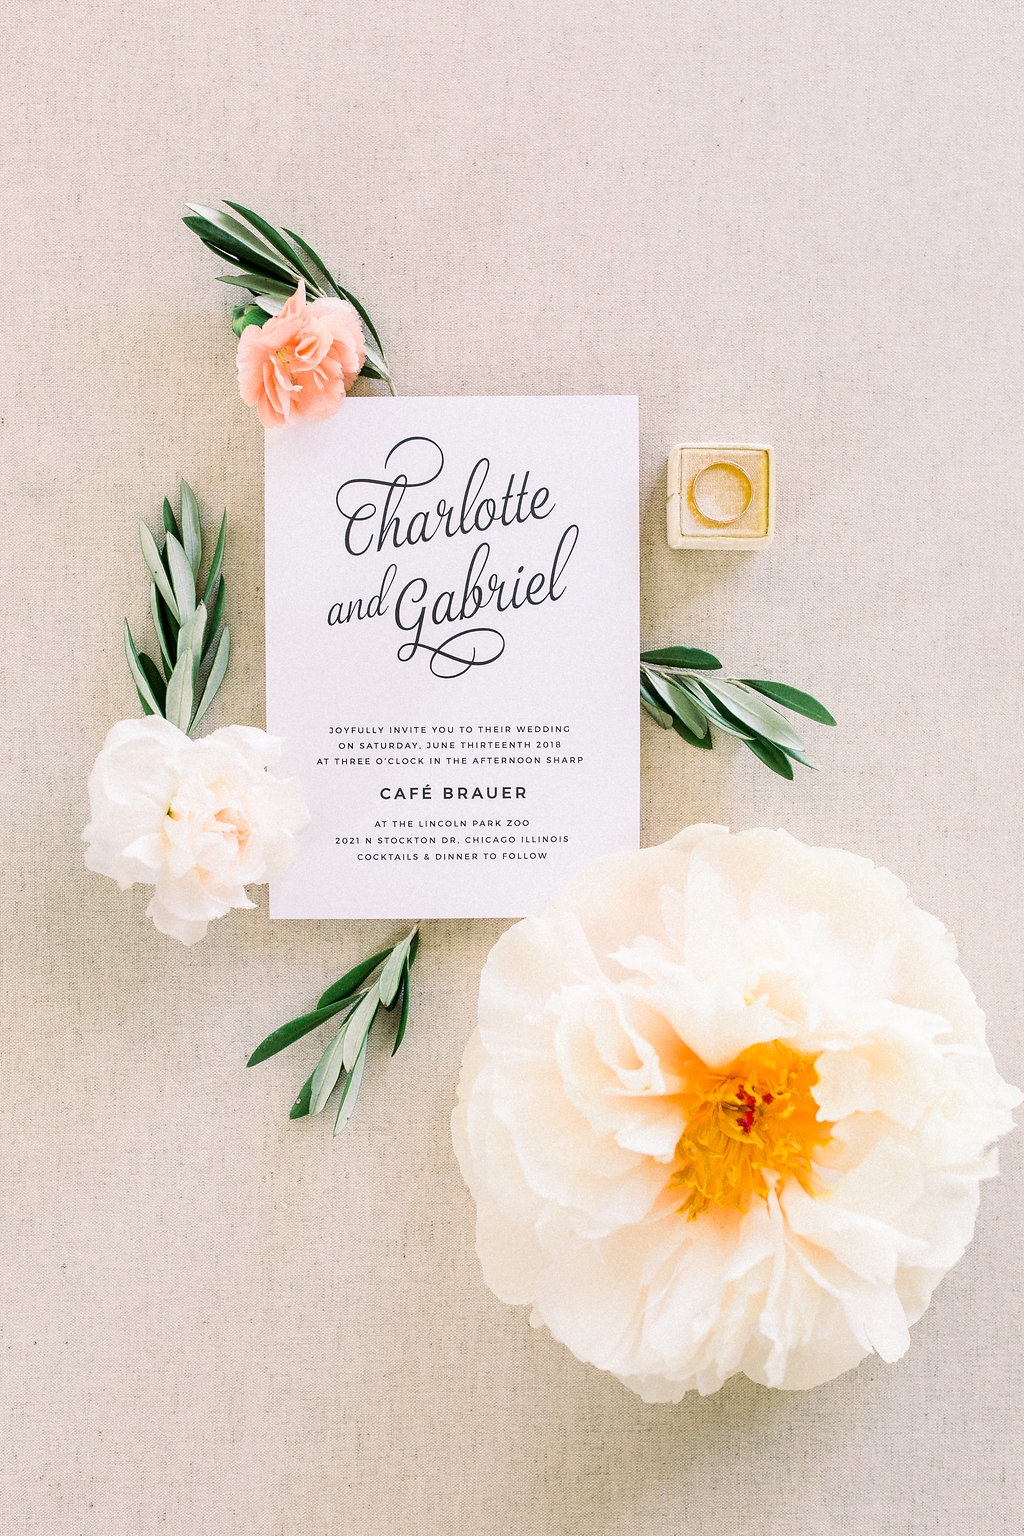 Simple wedding invitations that make a statement!